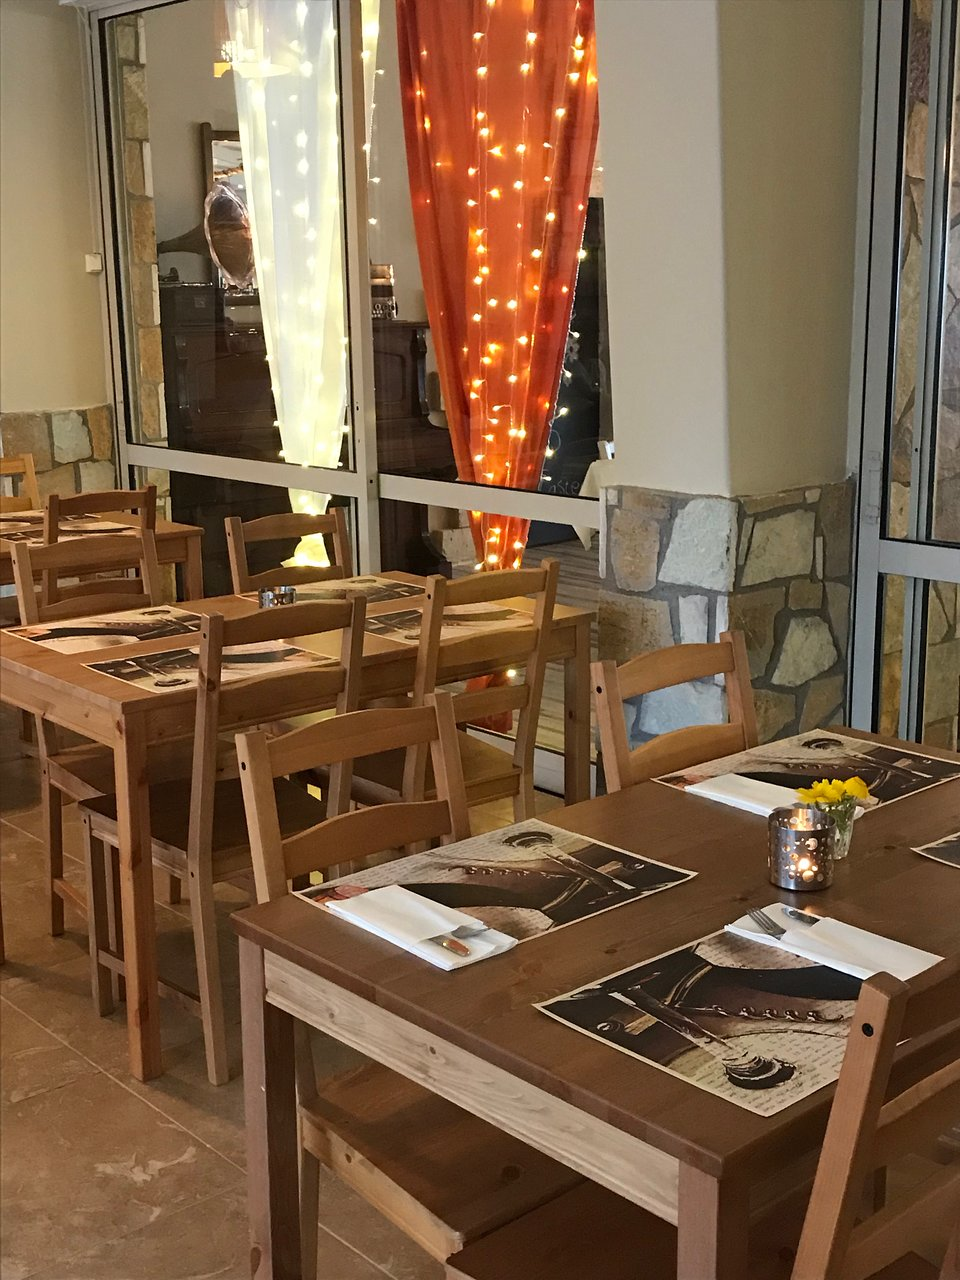 La Cucina Pylos Menu Anemos Updated 2019 Prices B B Reviews Gialova Greece